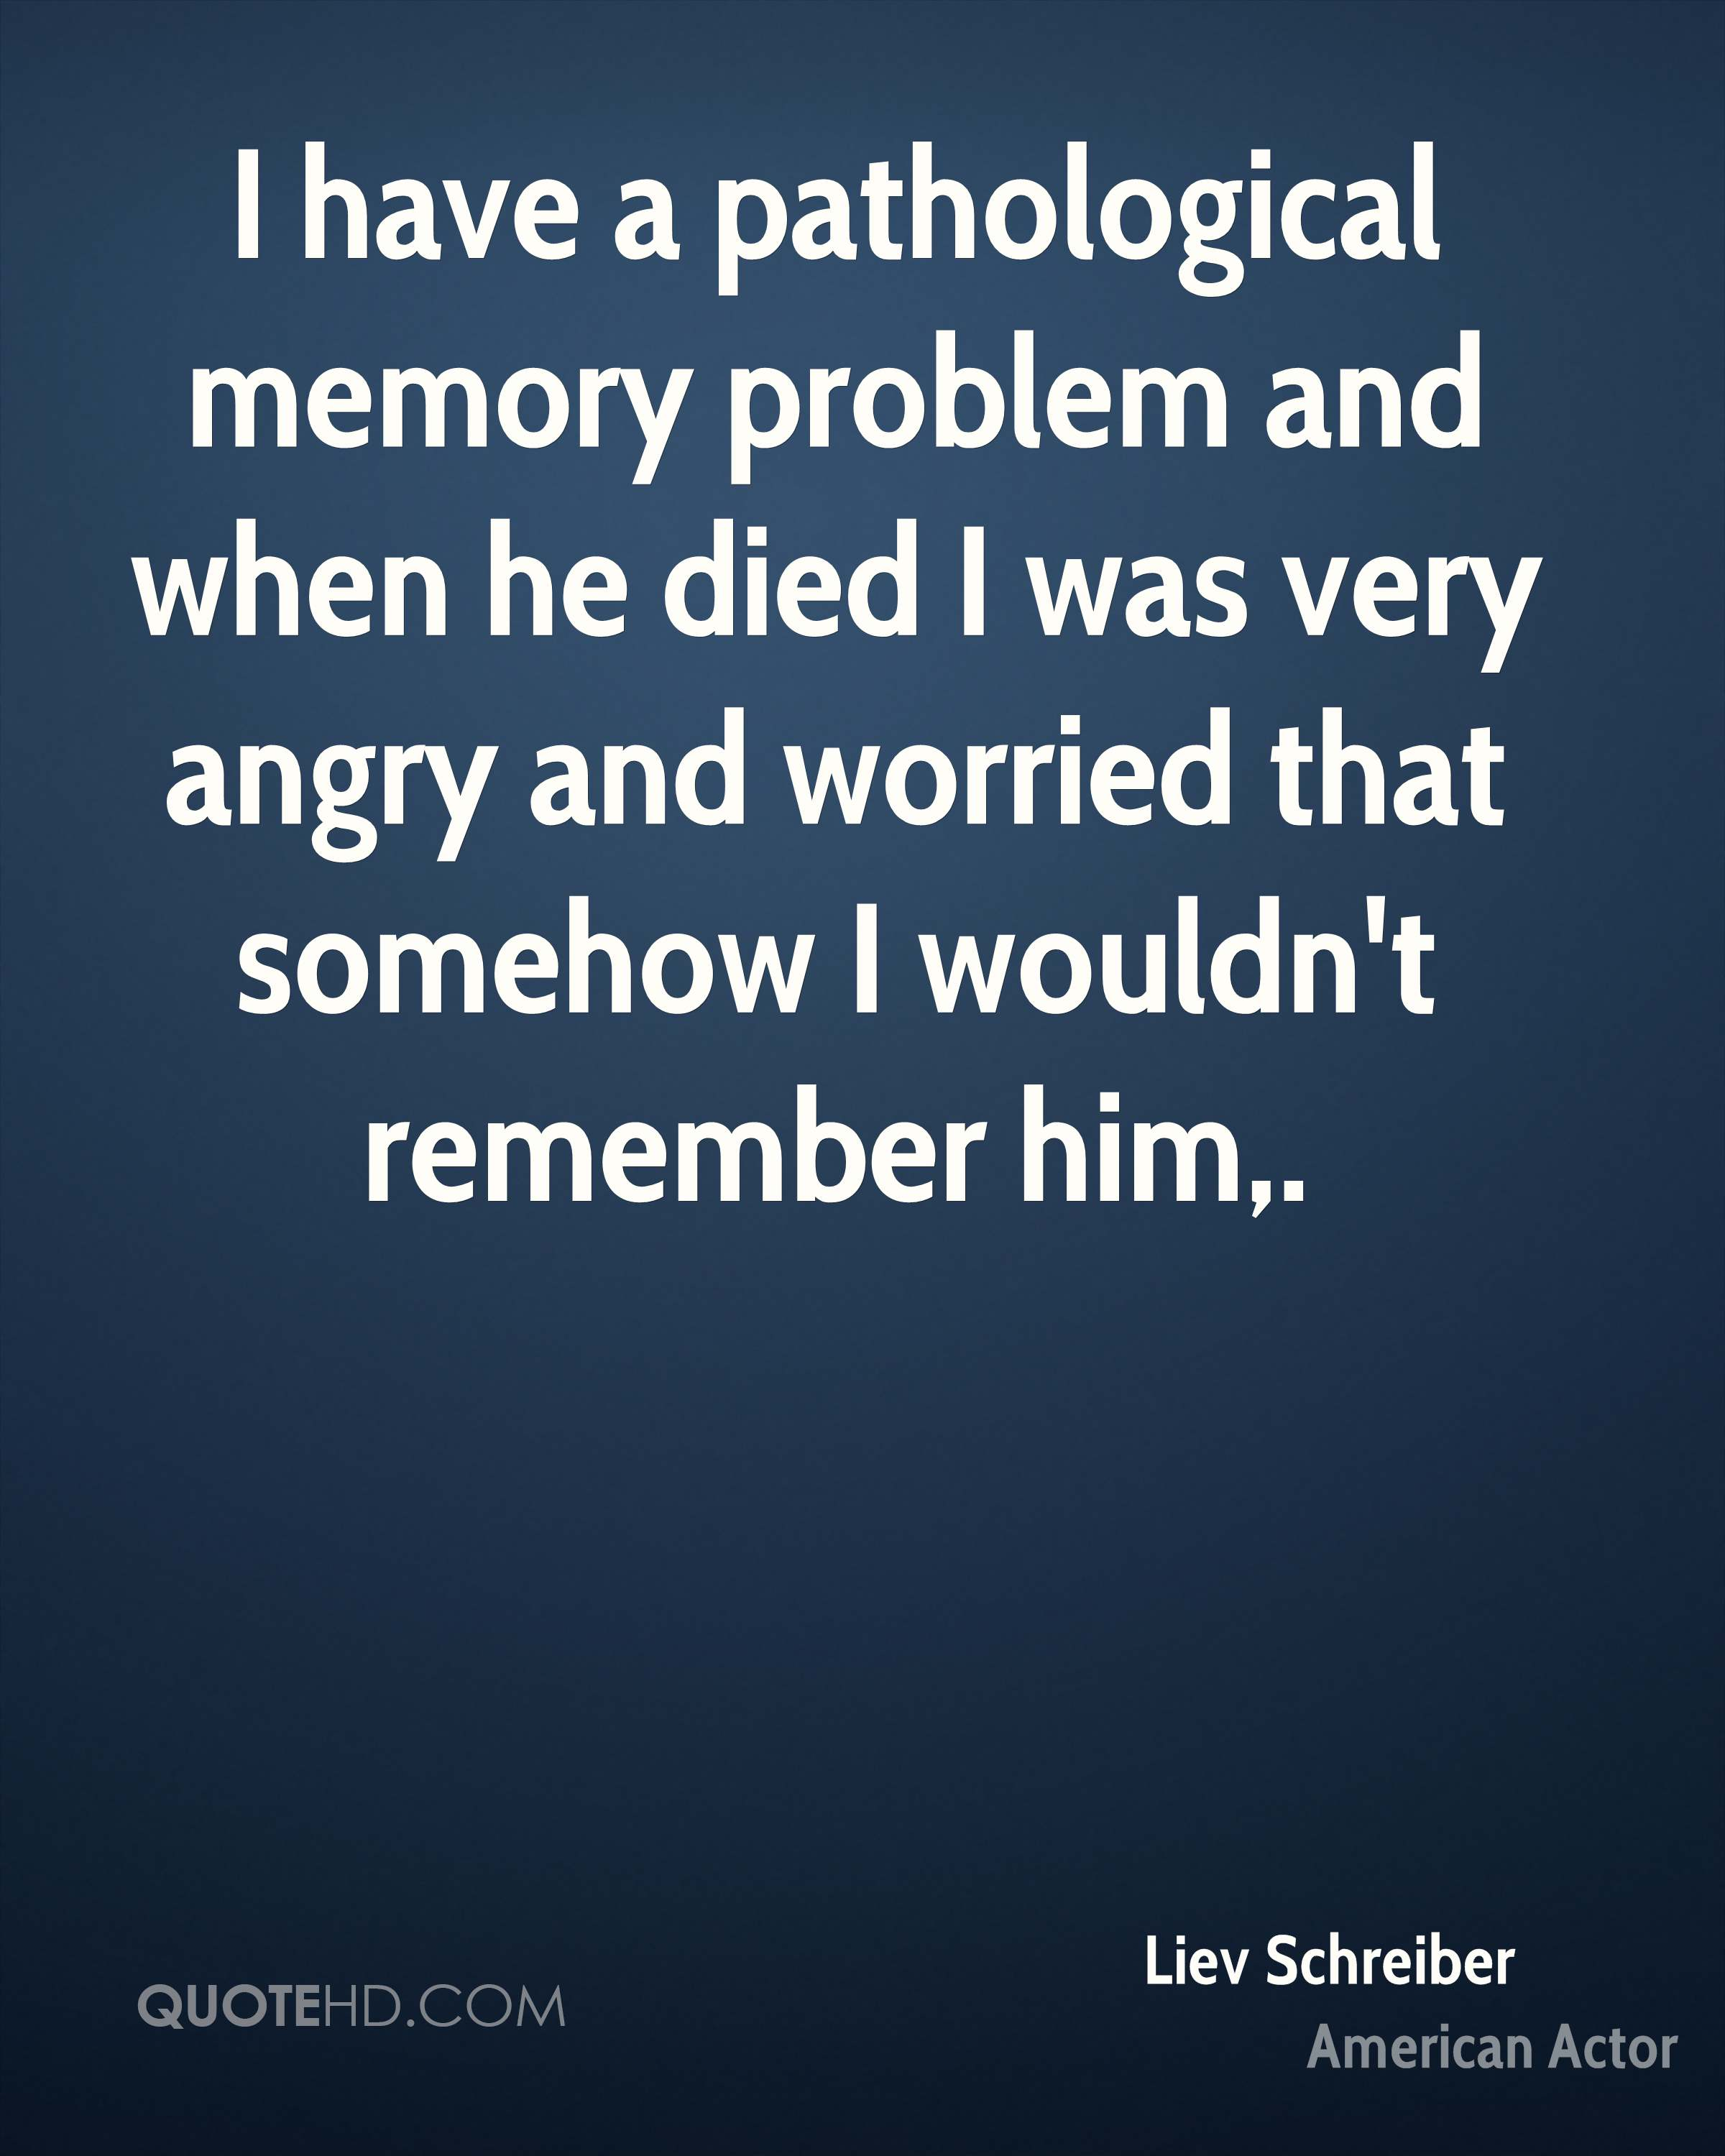 I have a pathological memory problem and when he died I was very angry and worried that somehow I wouldn't remember him.